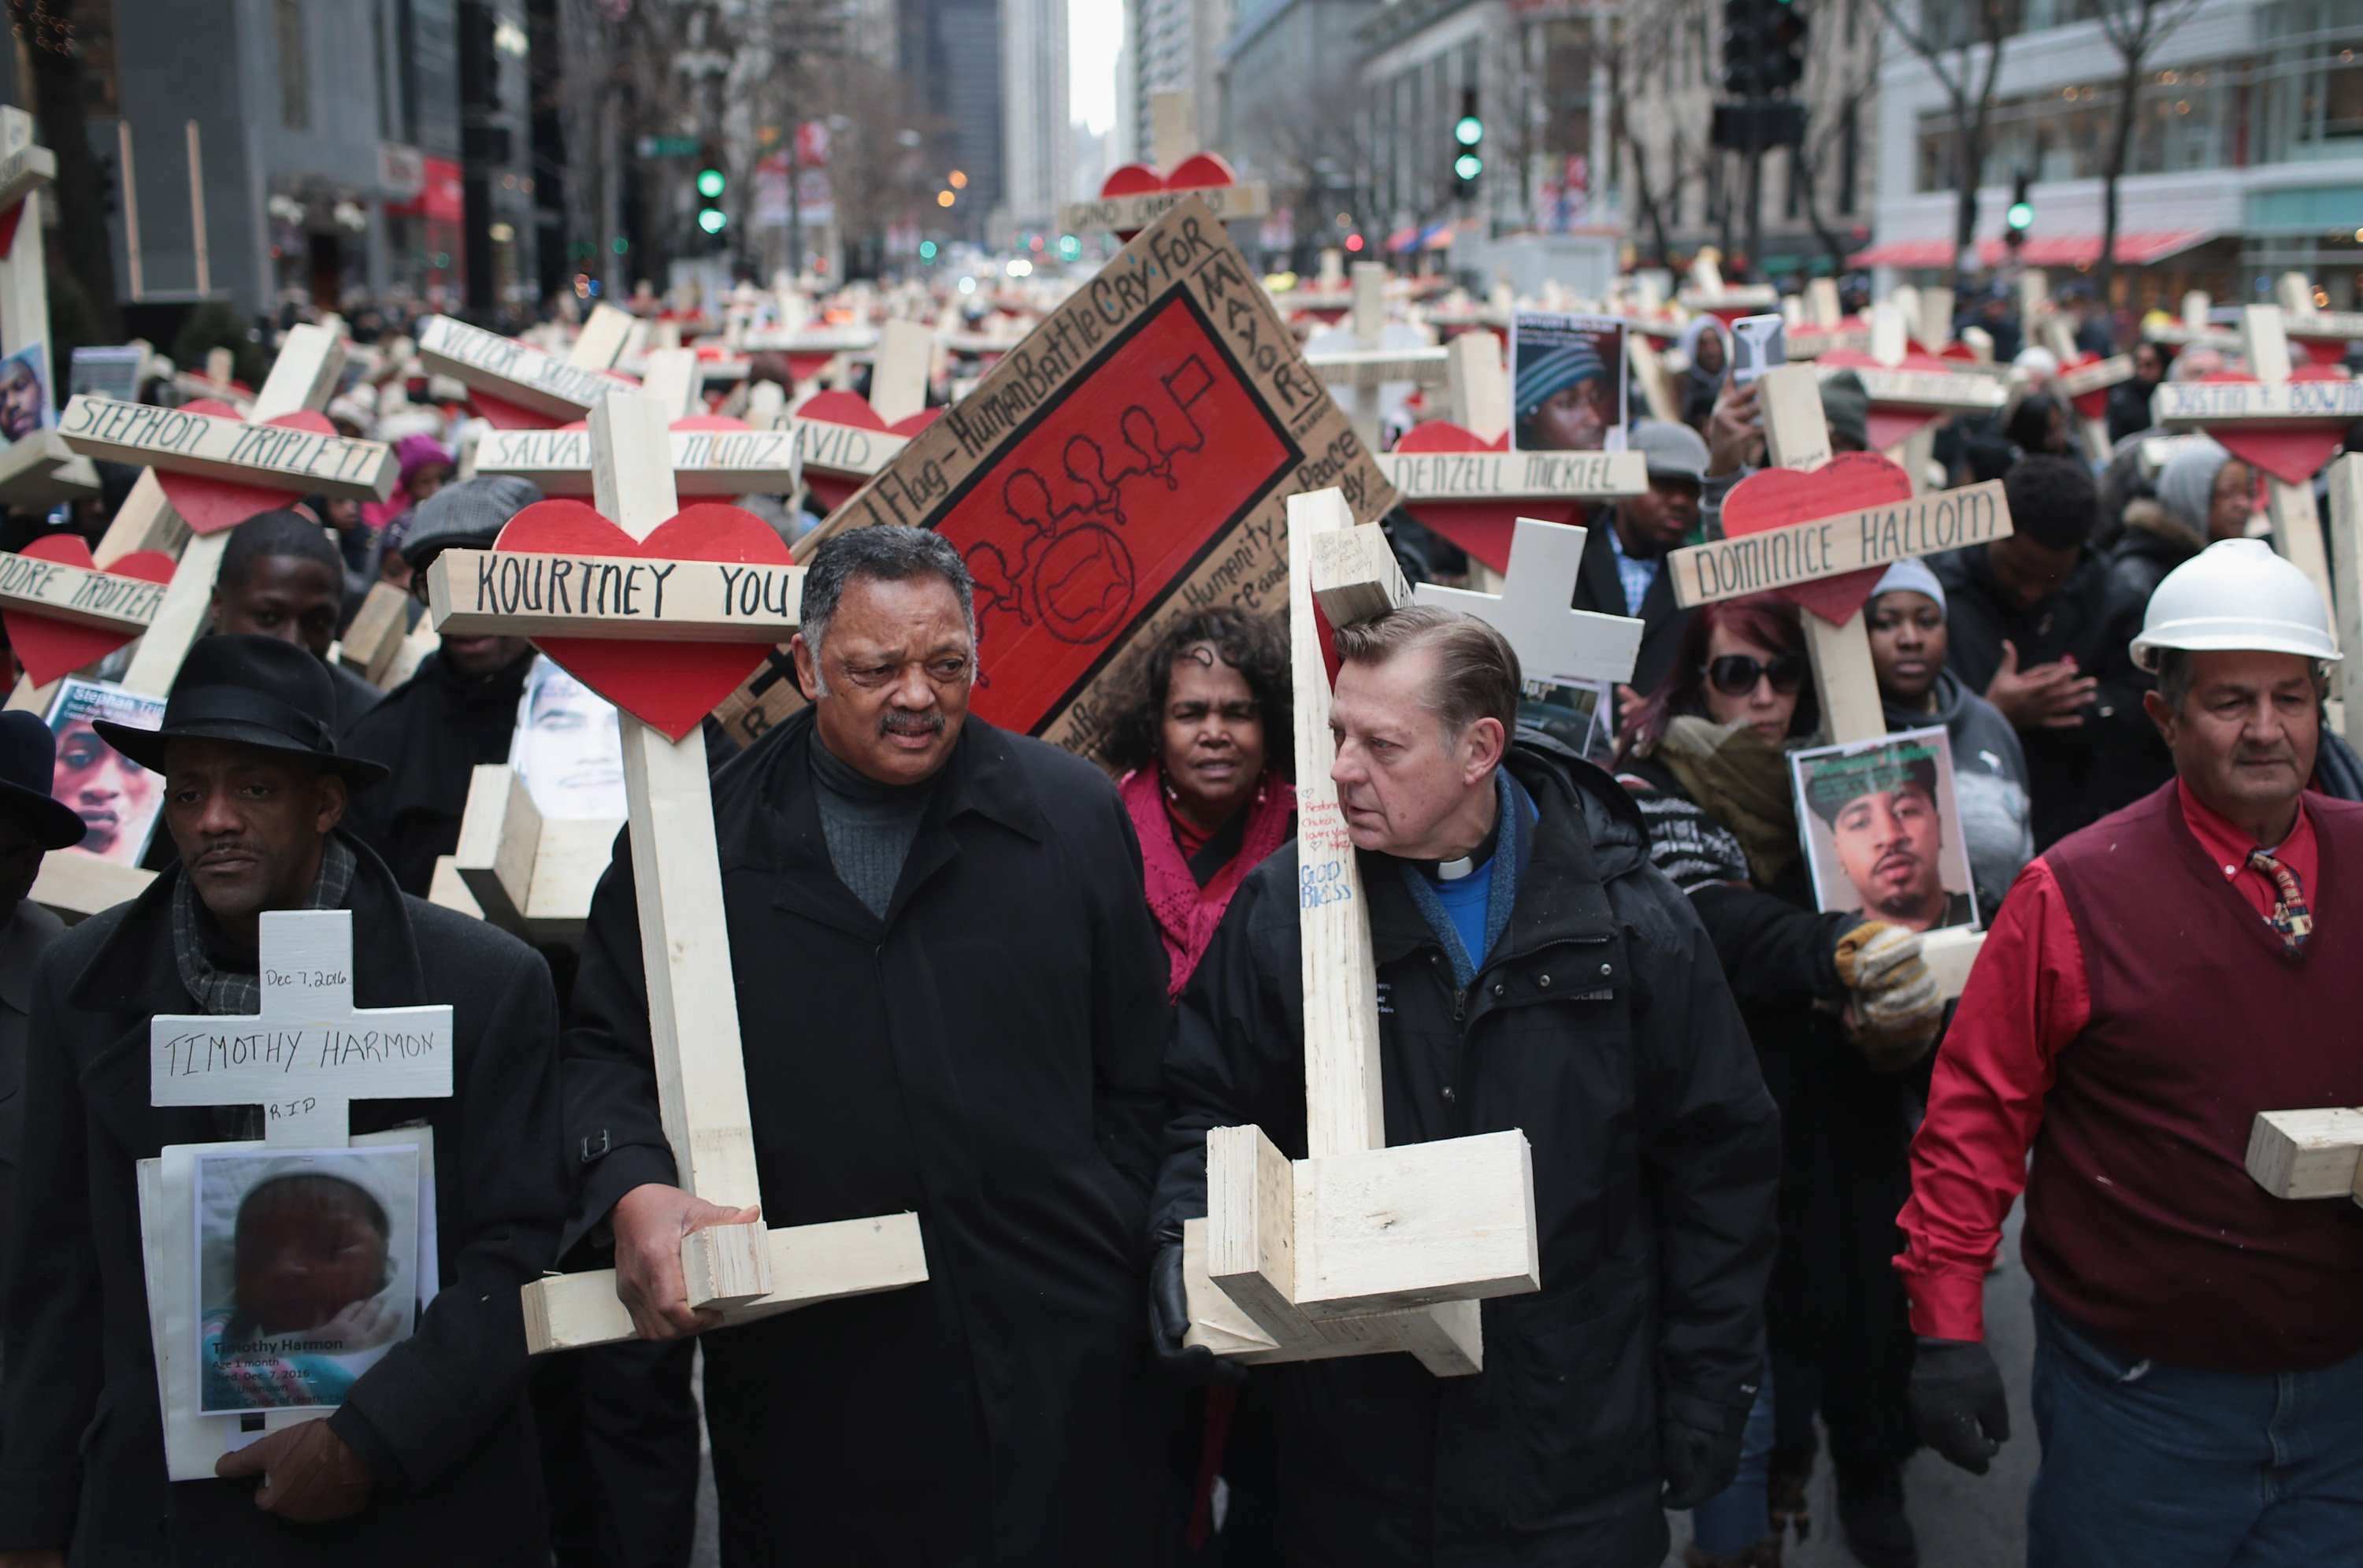 Image: Residents And Activists Hold Anti-Violence March After Deadly Year In Chicago